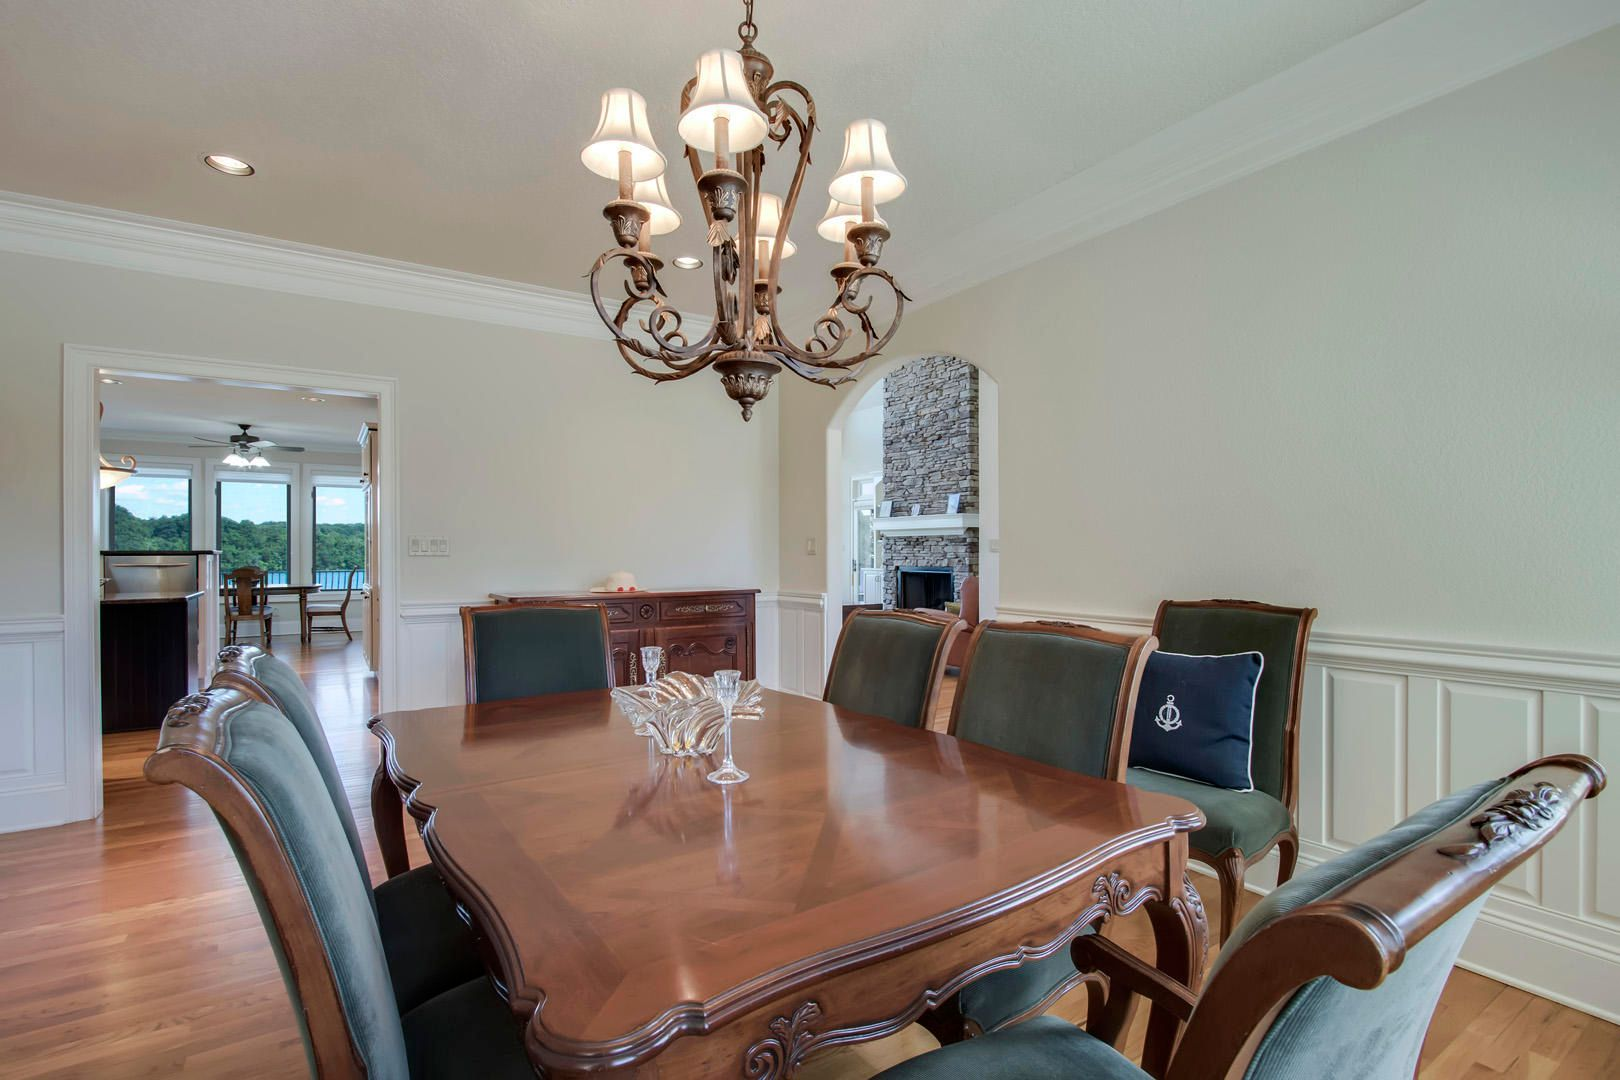 25_RockPointDrive_209_Dining02